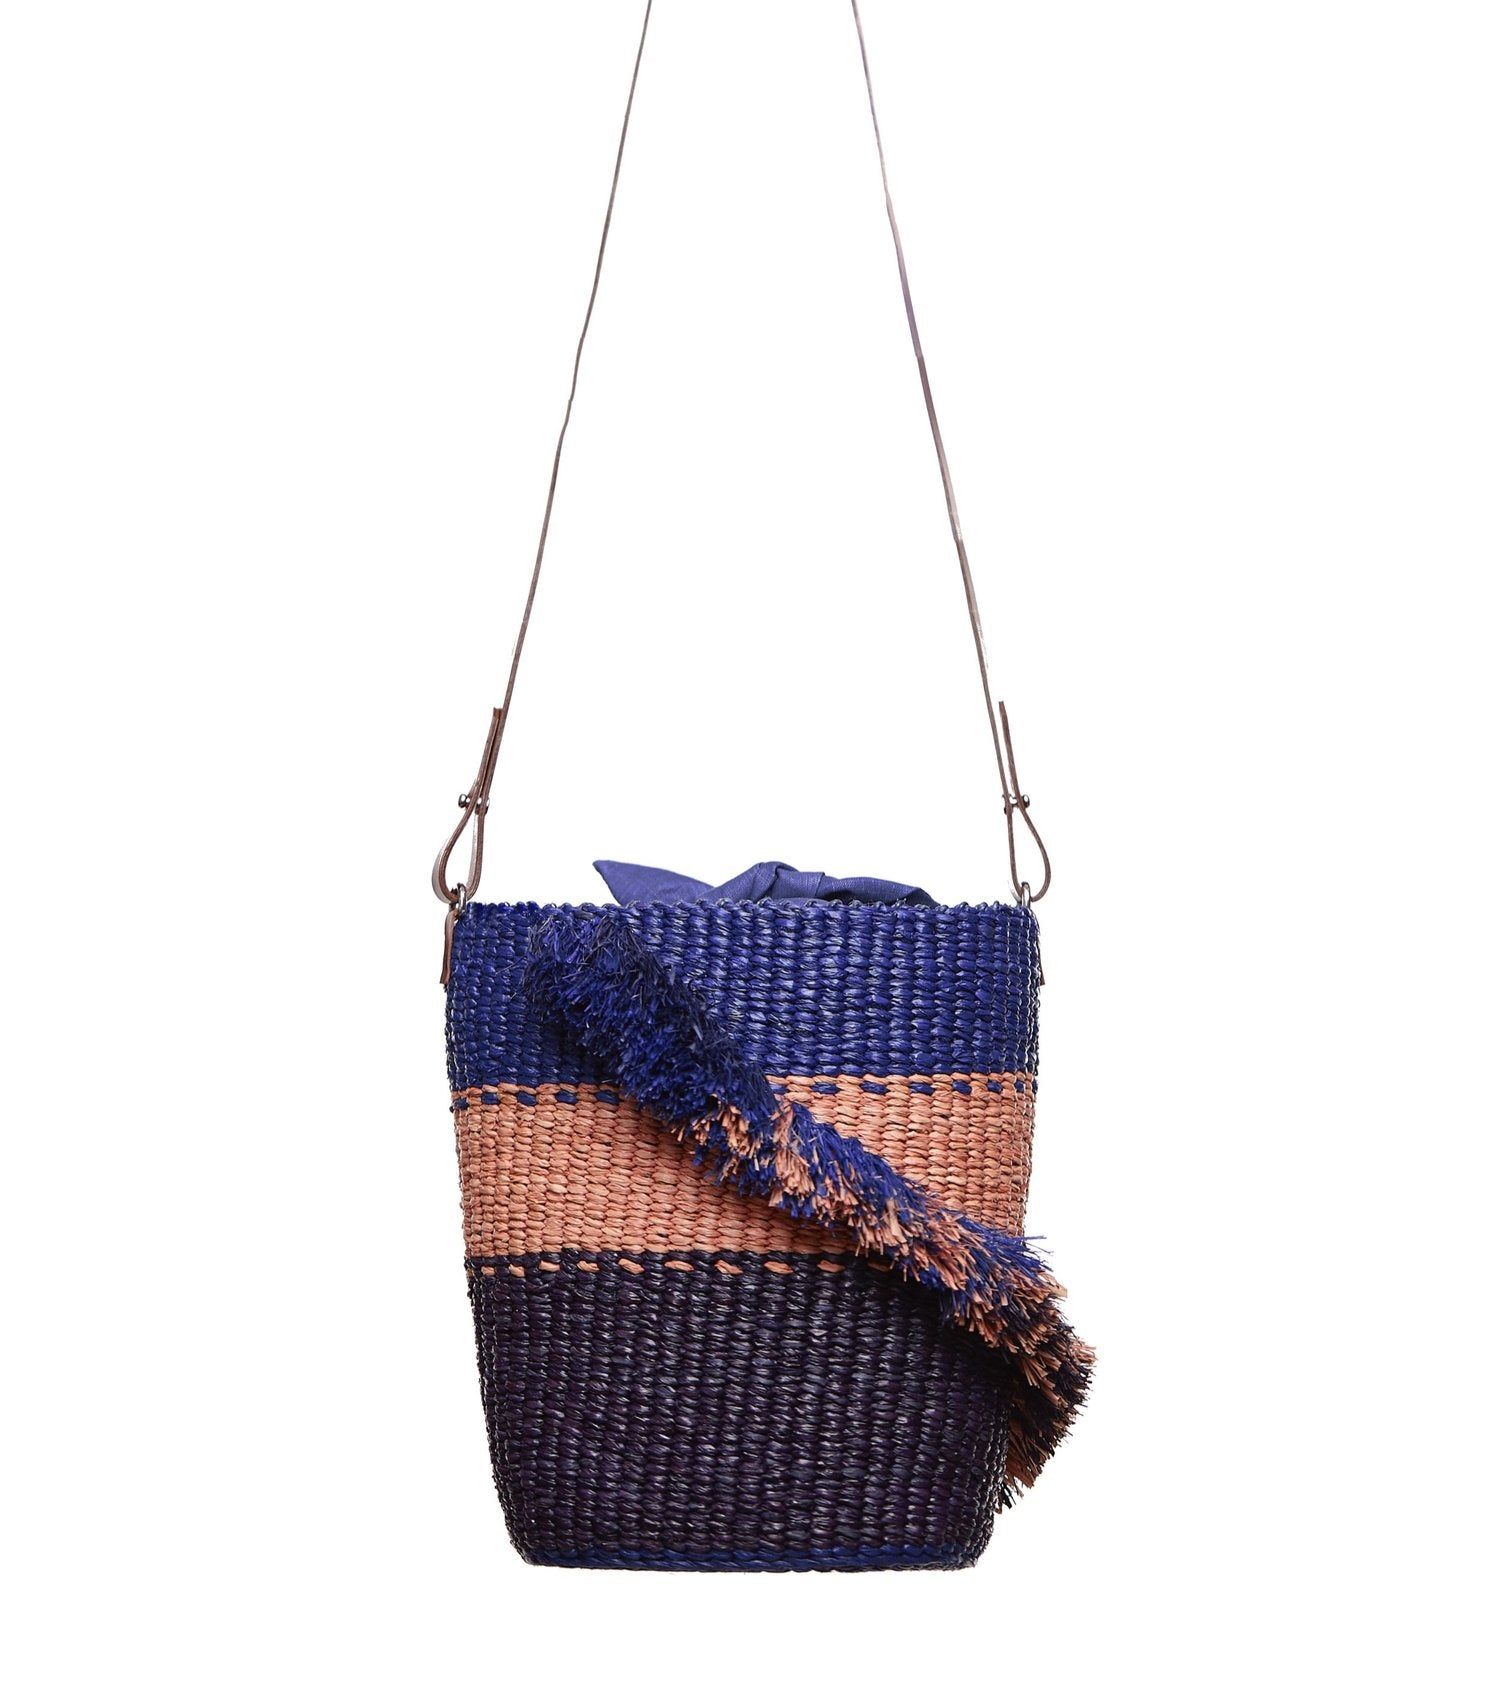 Lamé Ruffle Blue A.A.K.S. Bag - White Label Project